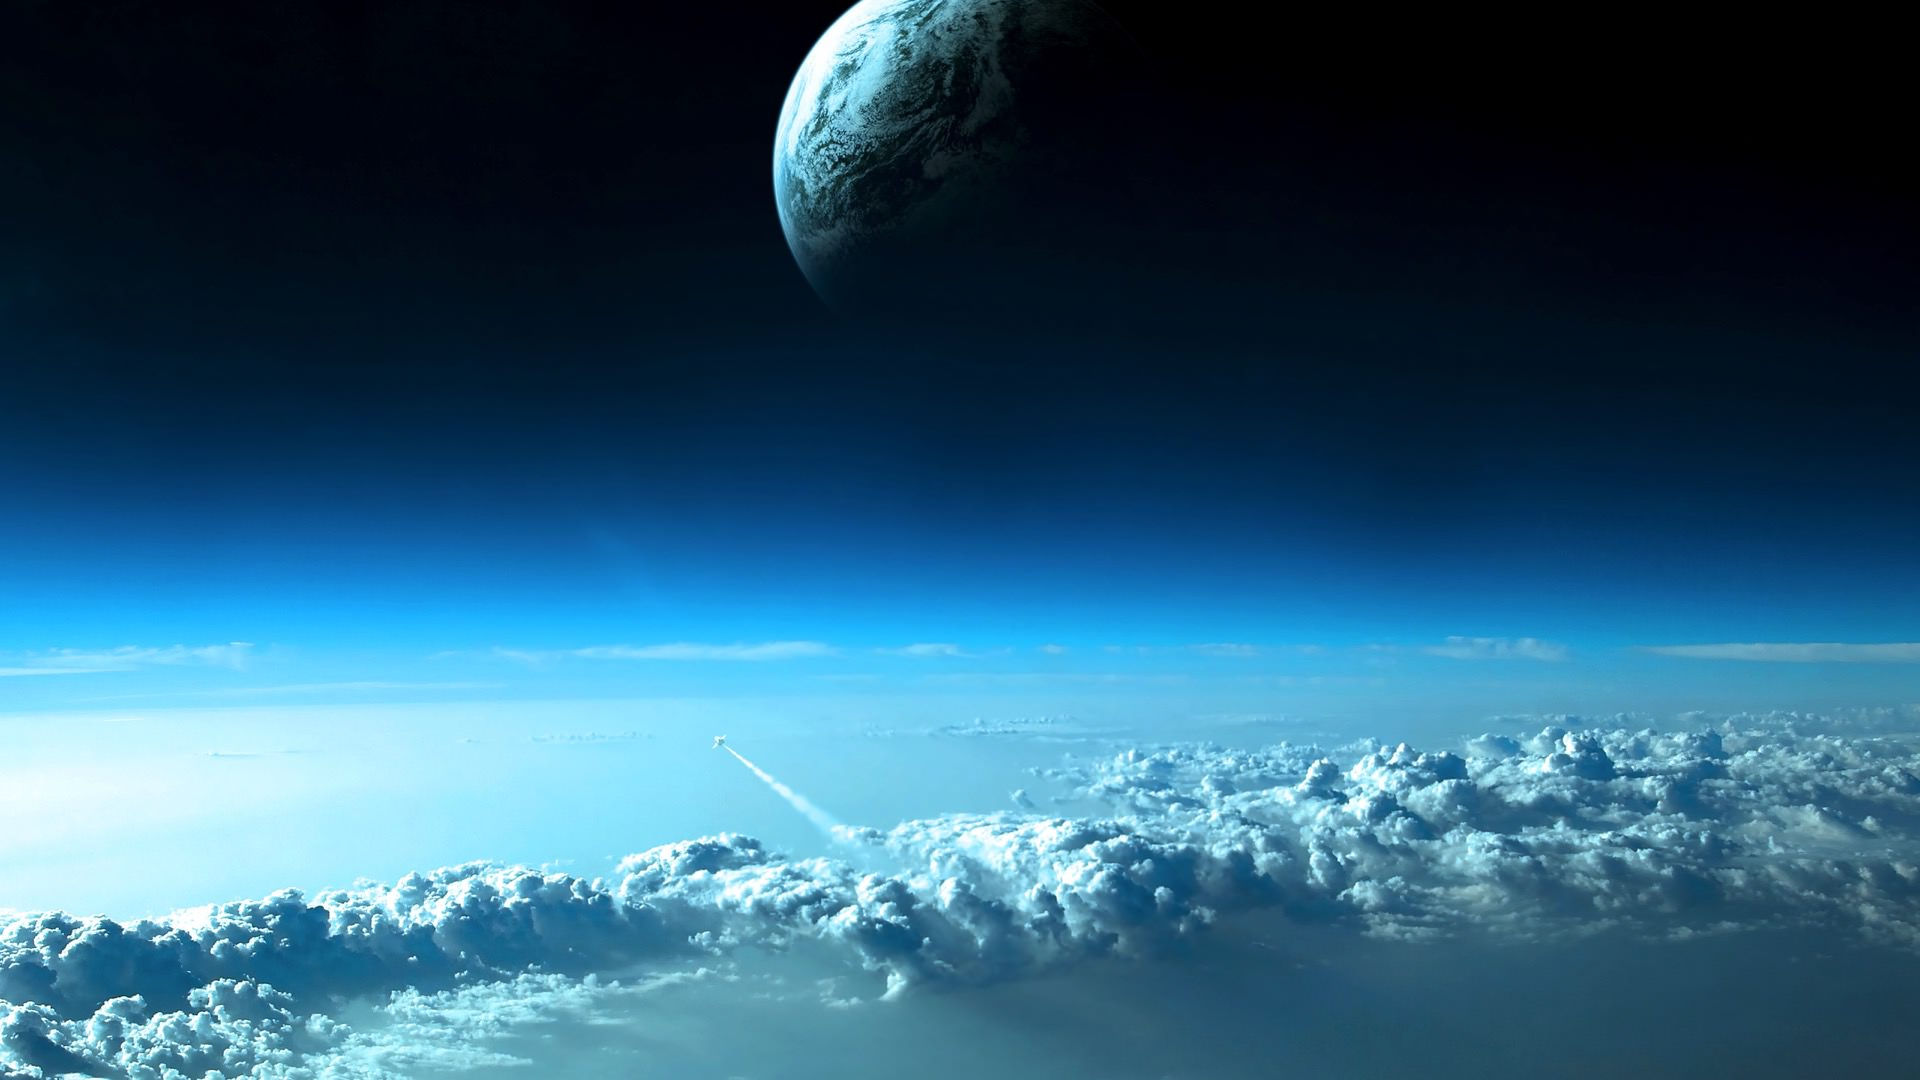 Space Earth stratosphere | wallpaper.sc Desktop